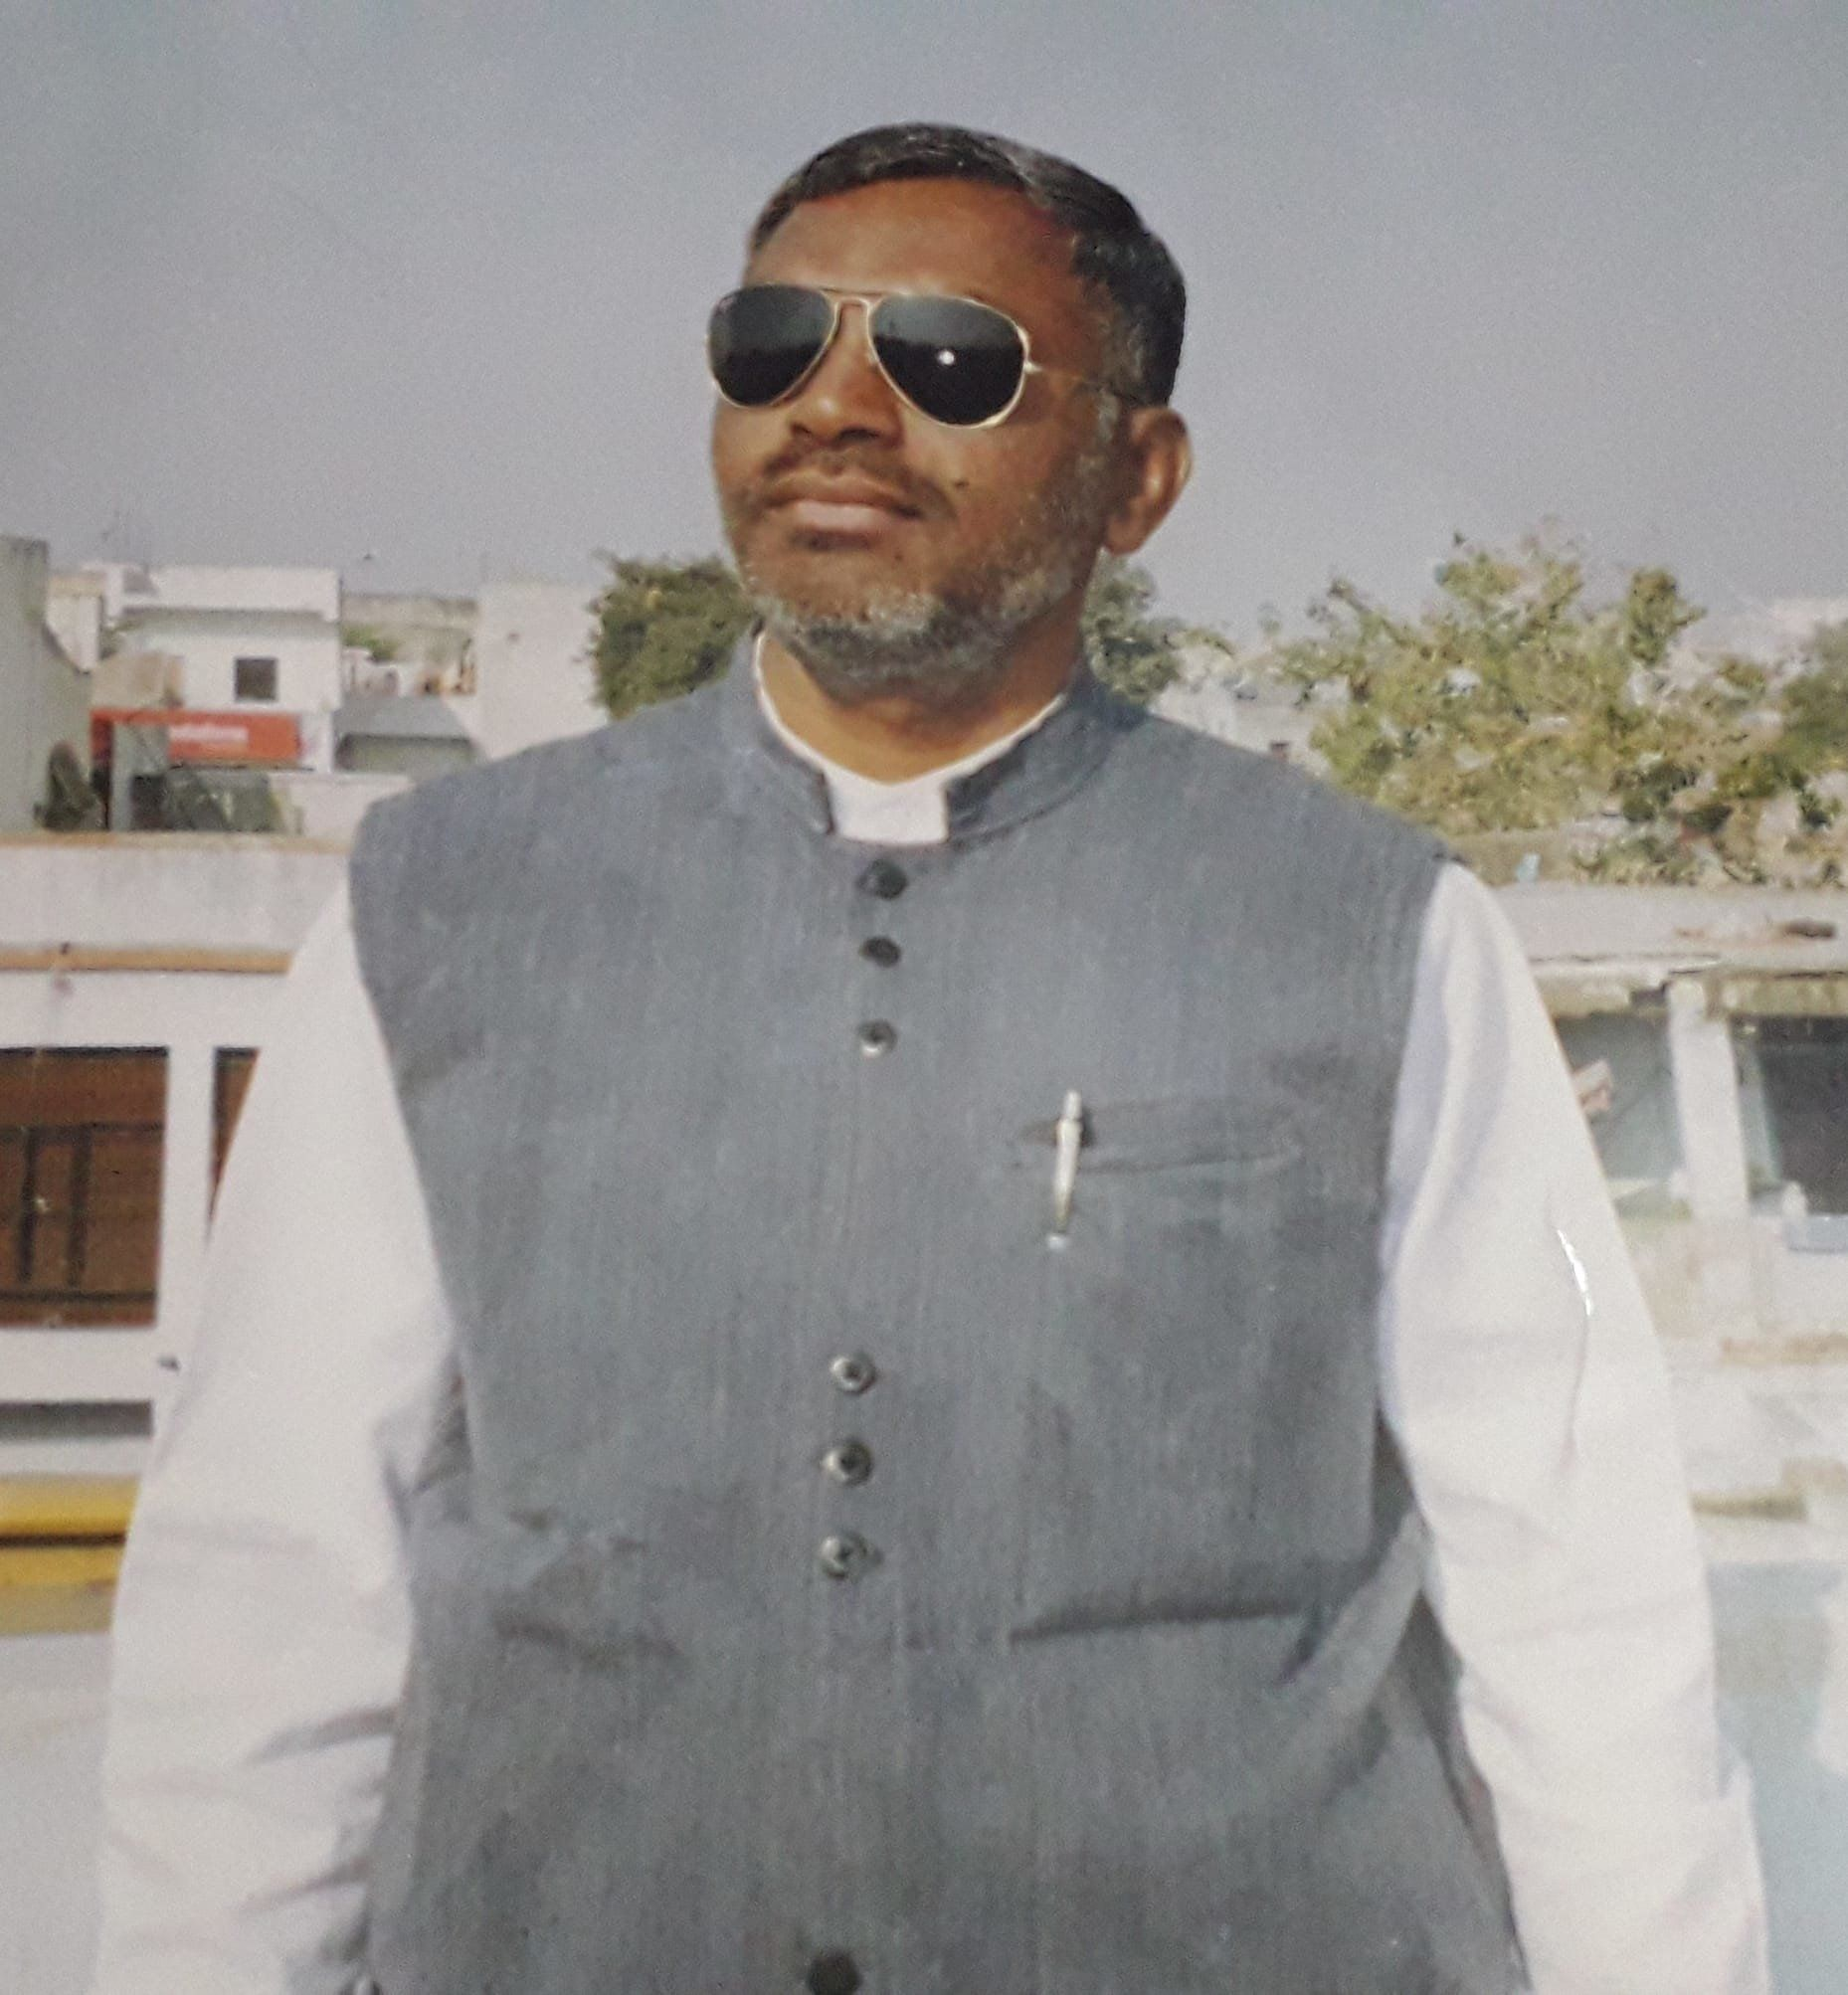 Gujarat Man Is Fighting Elections To 'Stop Harassment' Of Husbands Over Dowry, Domestic